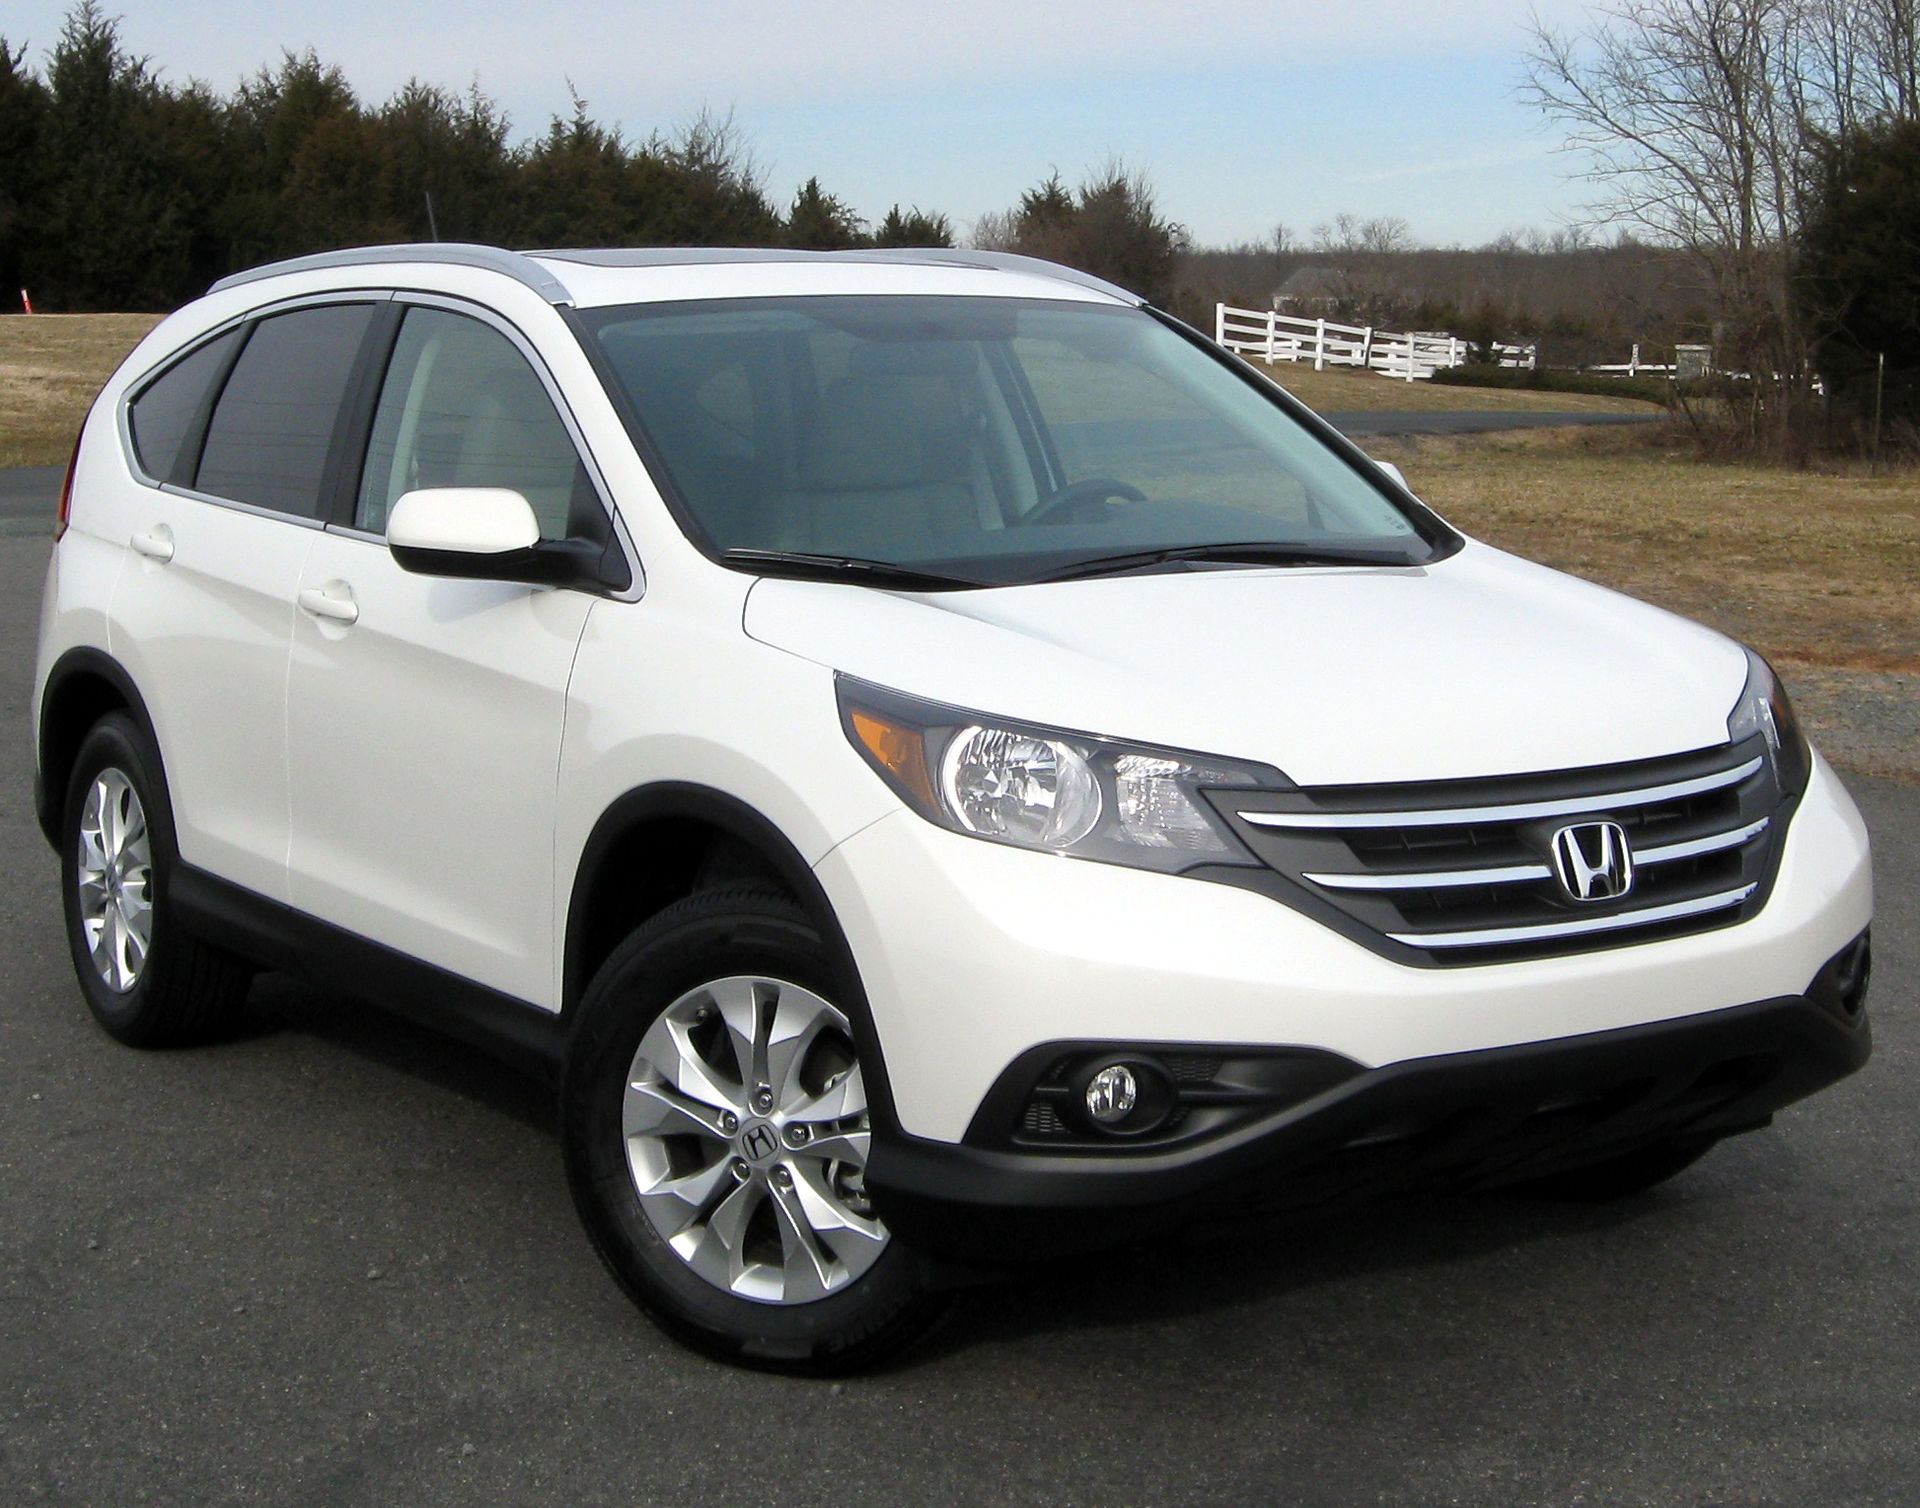 Honda Cr V Used Cars For Sale Perth